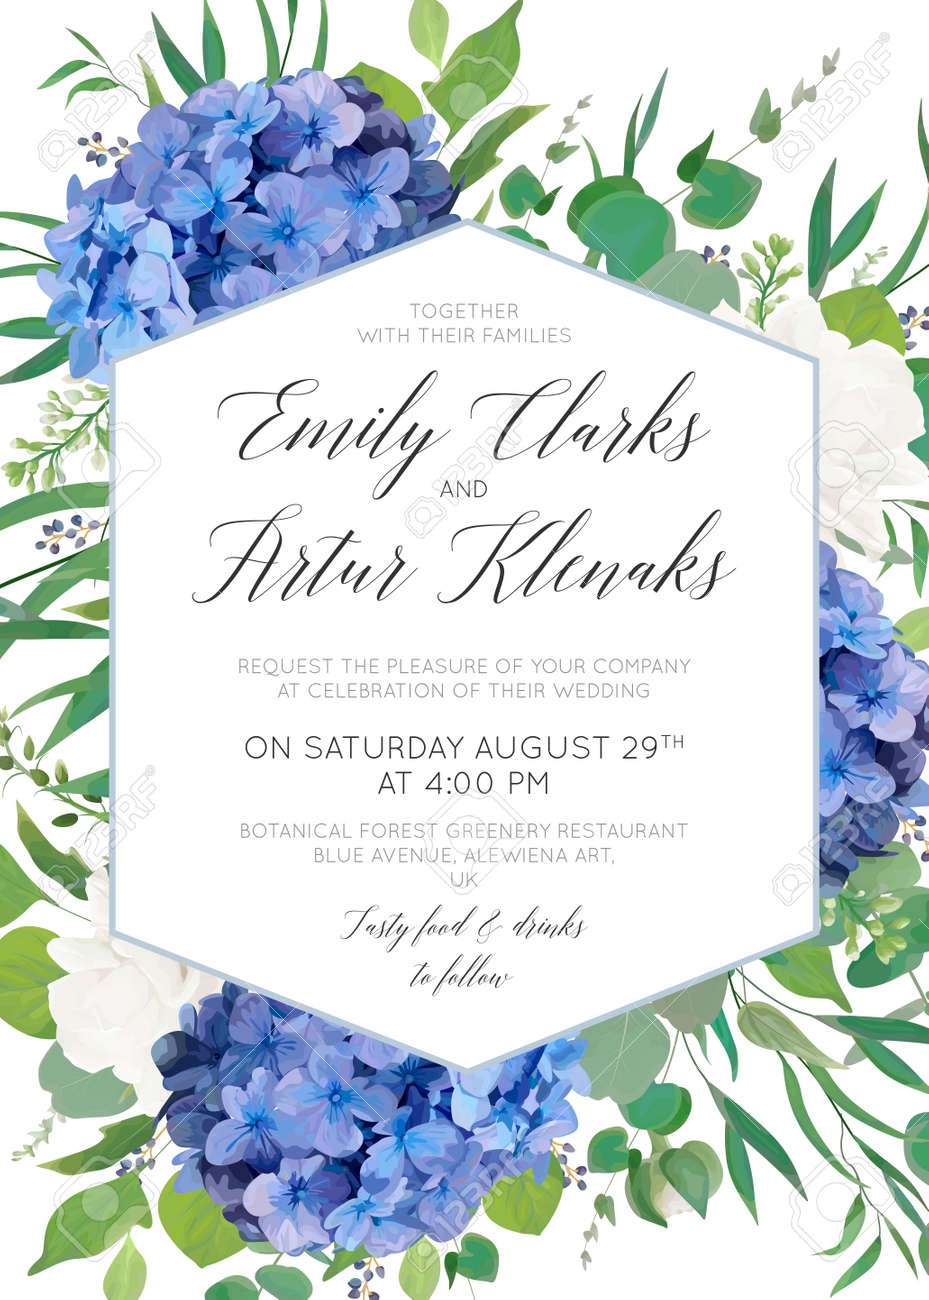 Wedding floral invite, save the date card design with elegant blue violet hydrangea flowers, white garden roses, eucalyptus green branches, greenery leaves, geometrical frame. Delicate cute template - 97147791